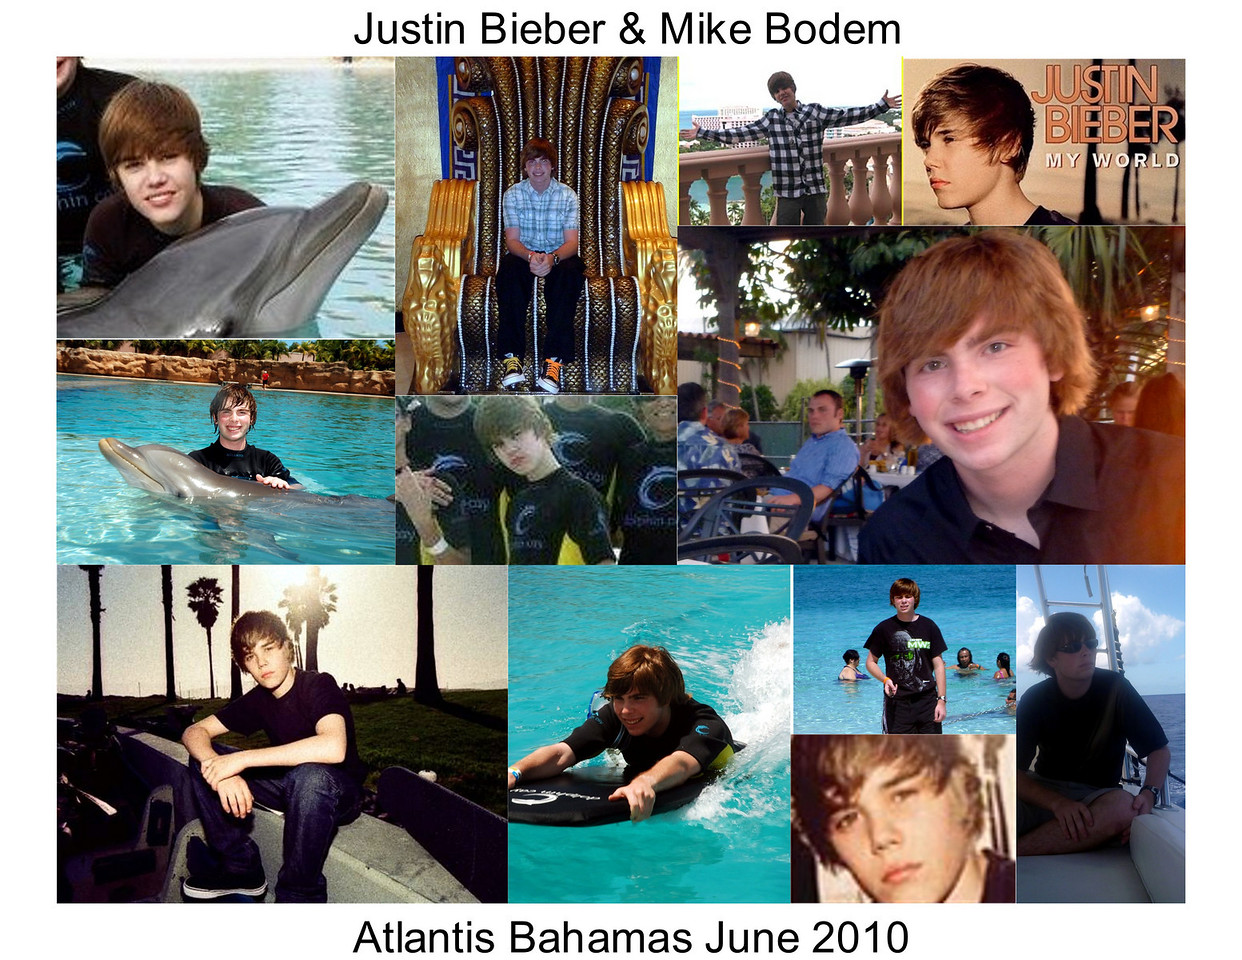 Justin Bieber held a concert at Atlantis while we were there. He stayed at our hotel.  Many people thought Mike was Justin and came up to him to shake his hand and say they enjoyed his music.